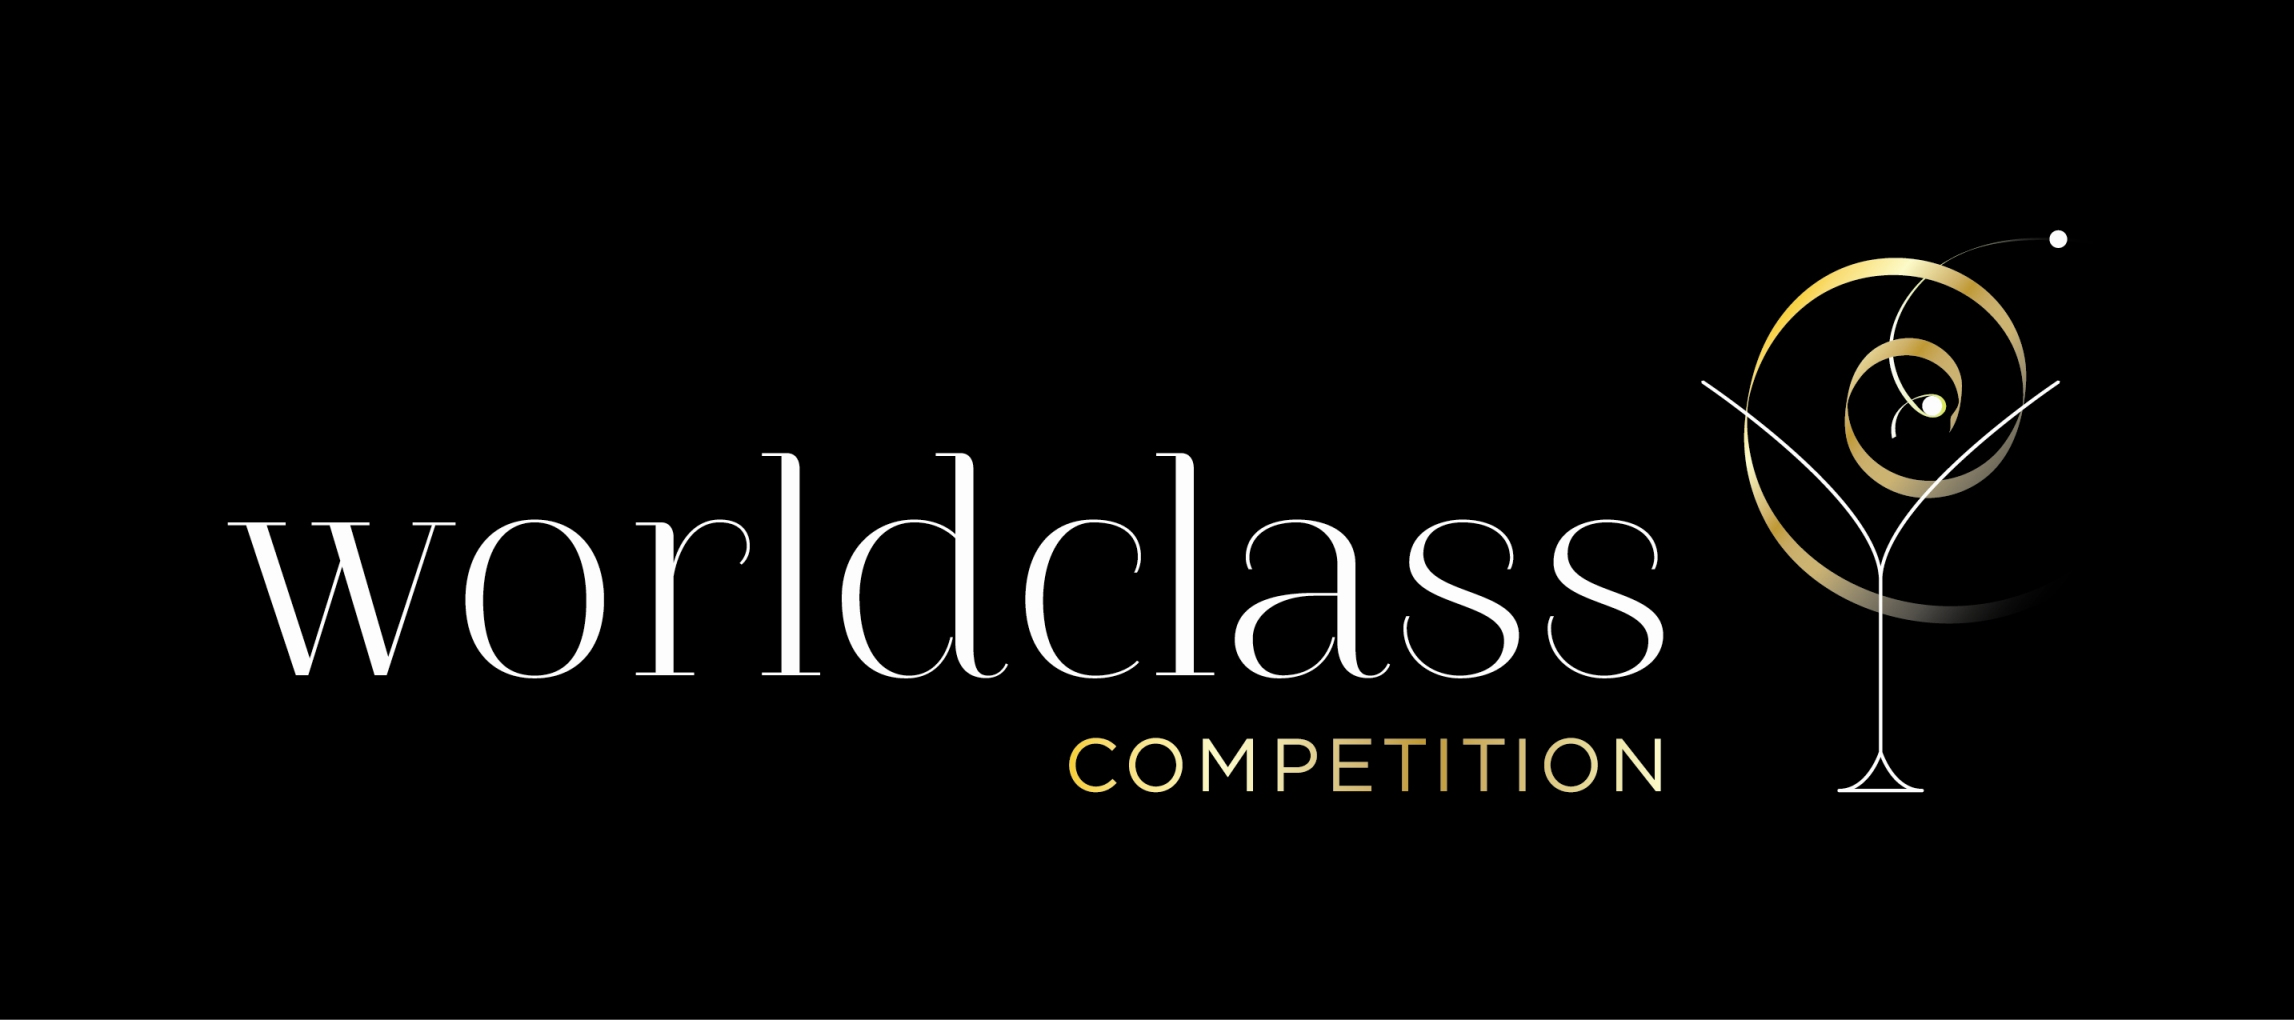 worldclass_competition_horizontal_cmyk